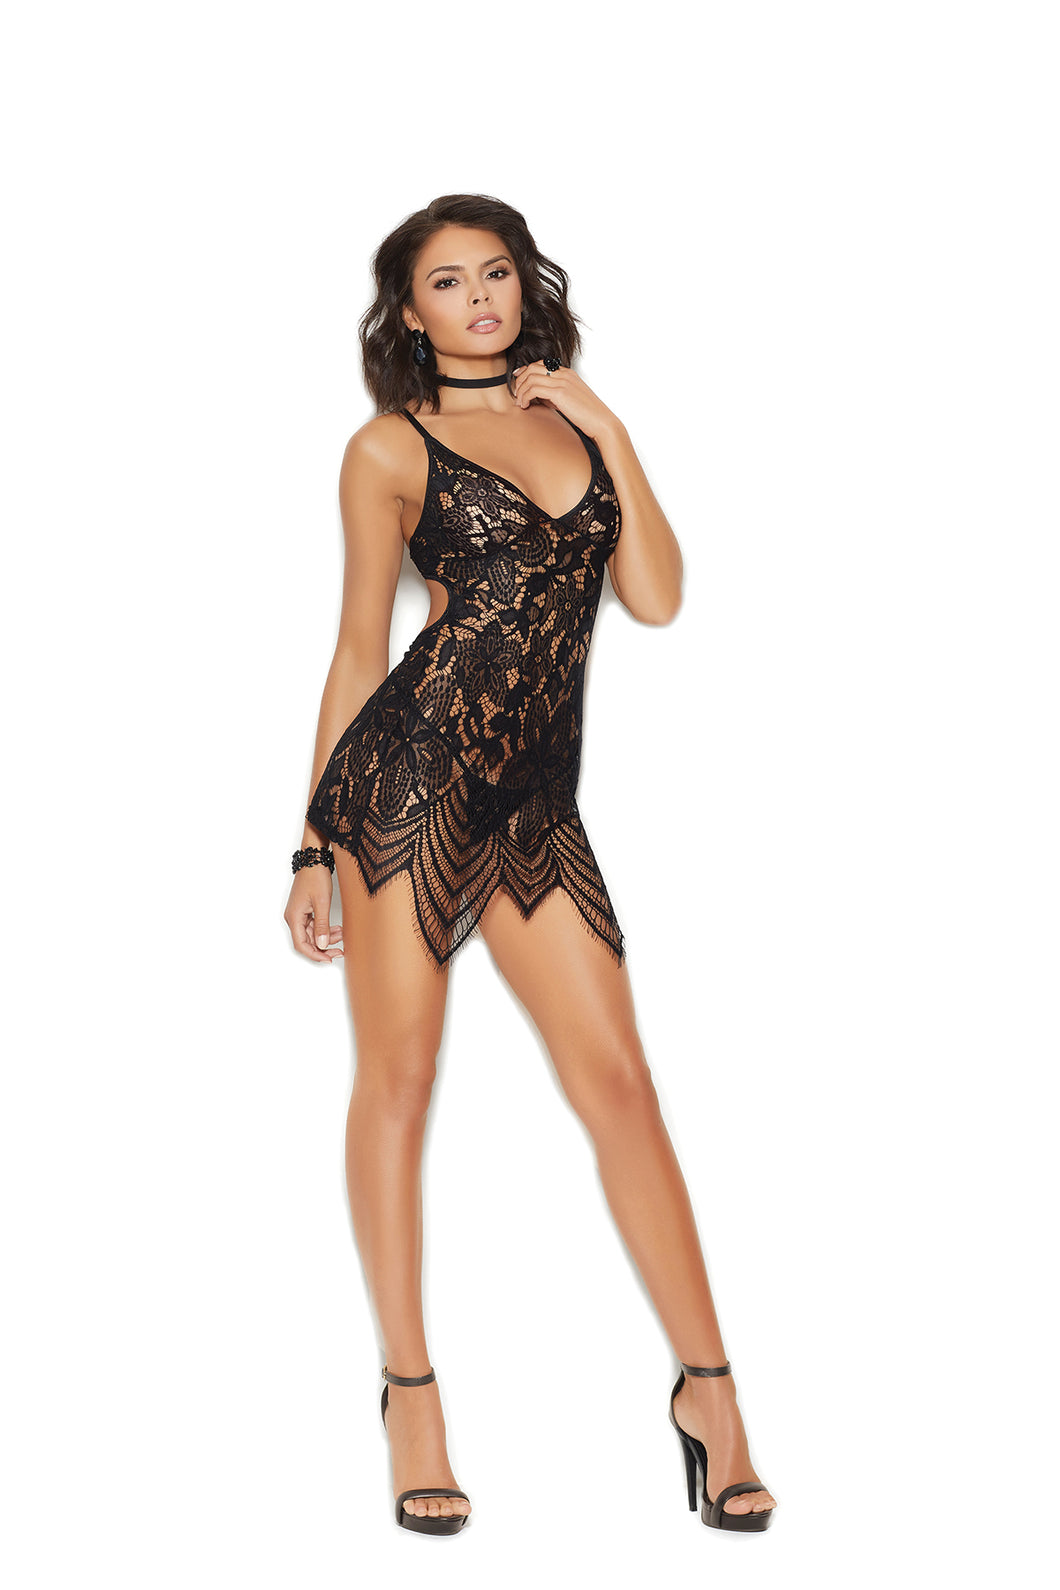 Lace babydoll with adjustable straps. Hook & eye back closure. Matching g-string included. 100% Nylon.